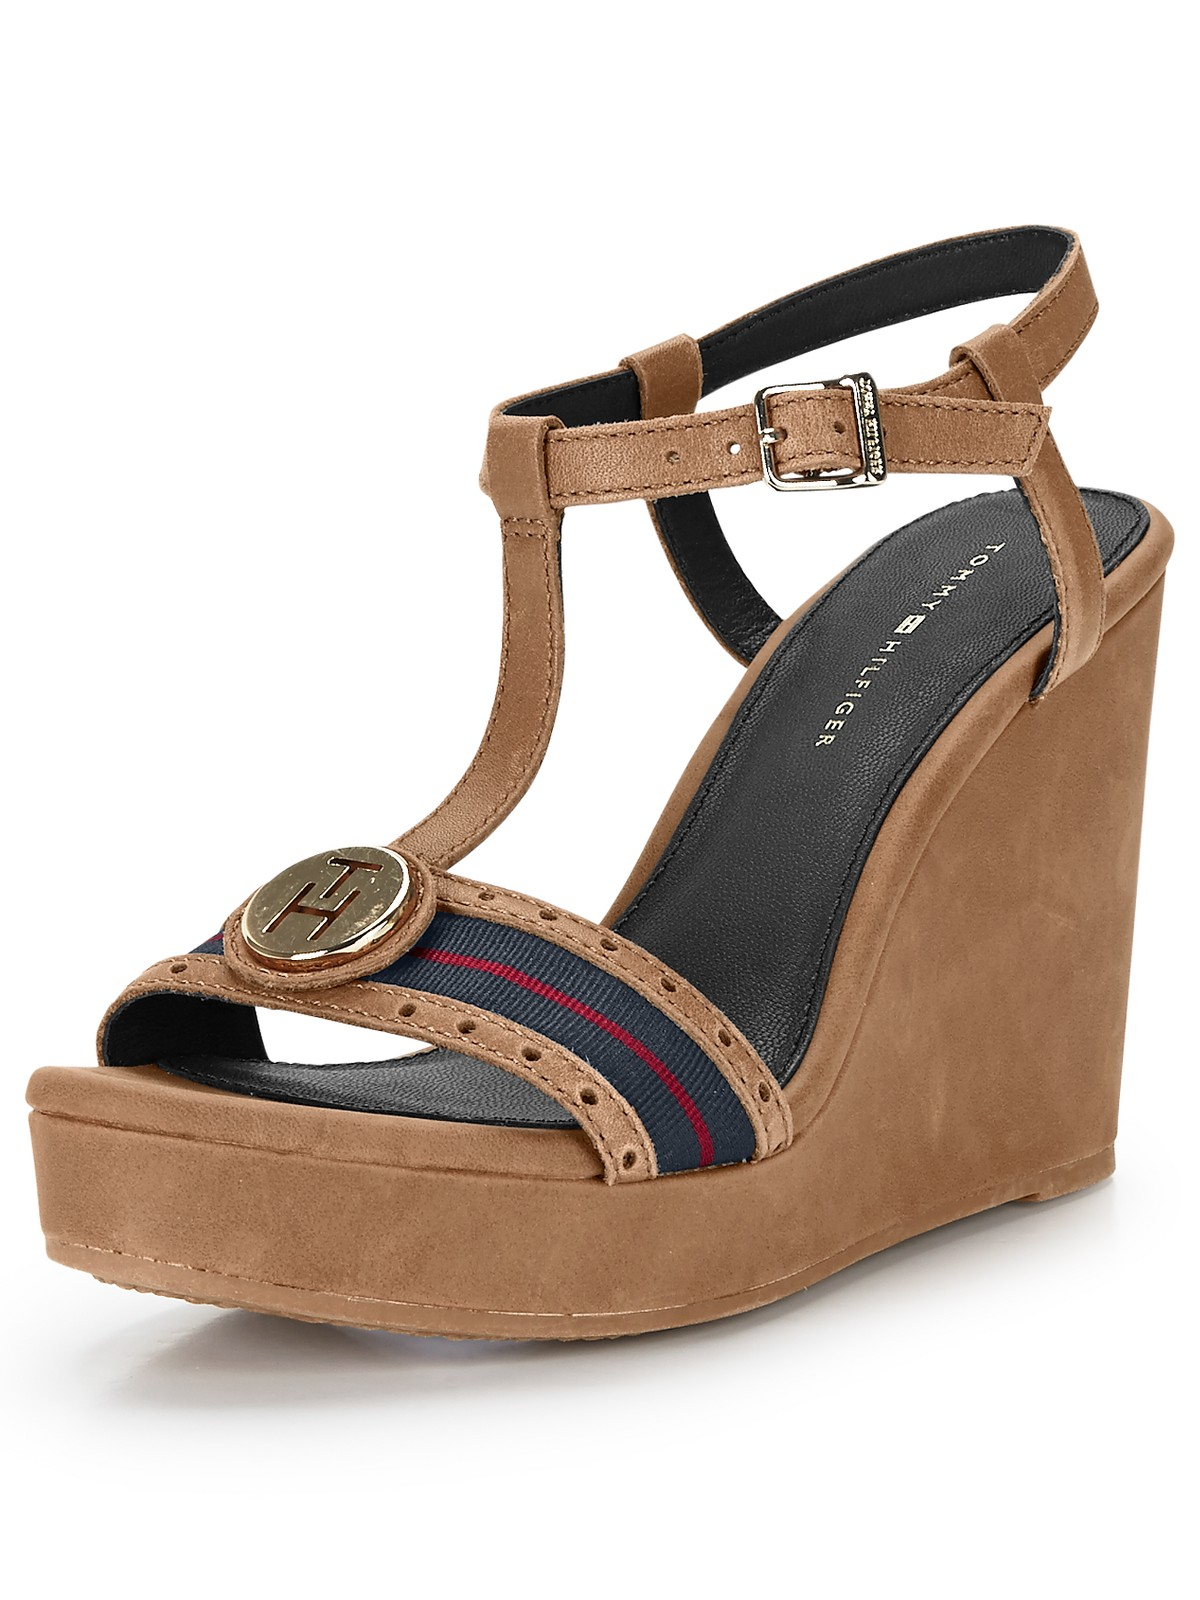 tommy hilfiger emery leather logo wedge sandals in brown. Black Bedroom Furniture Sets. Home Design Ideas